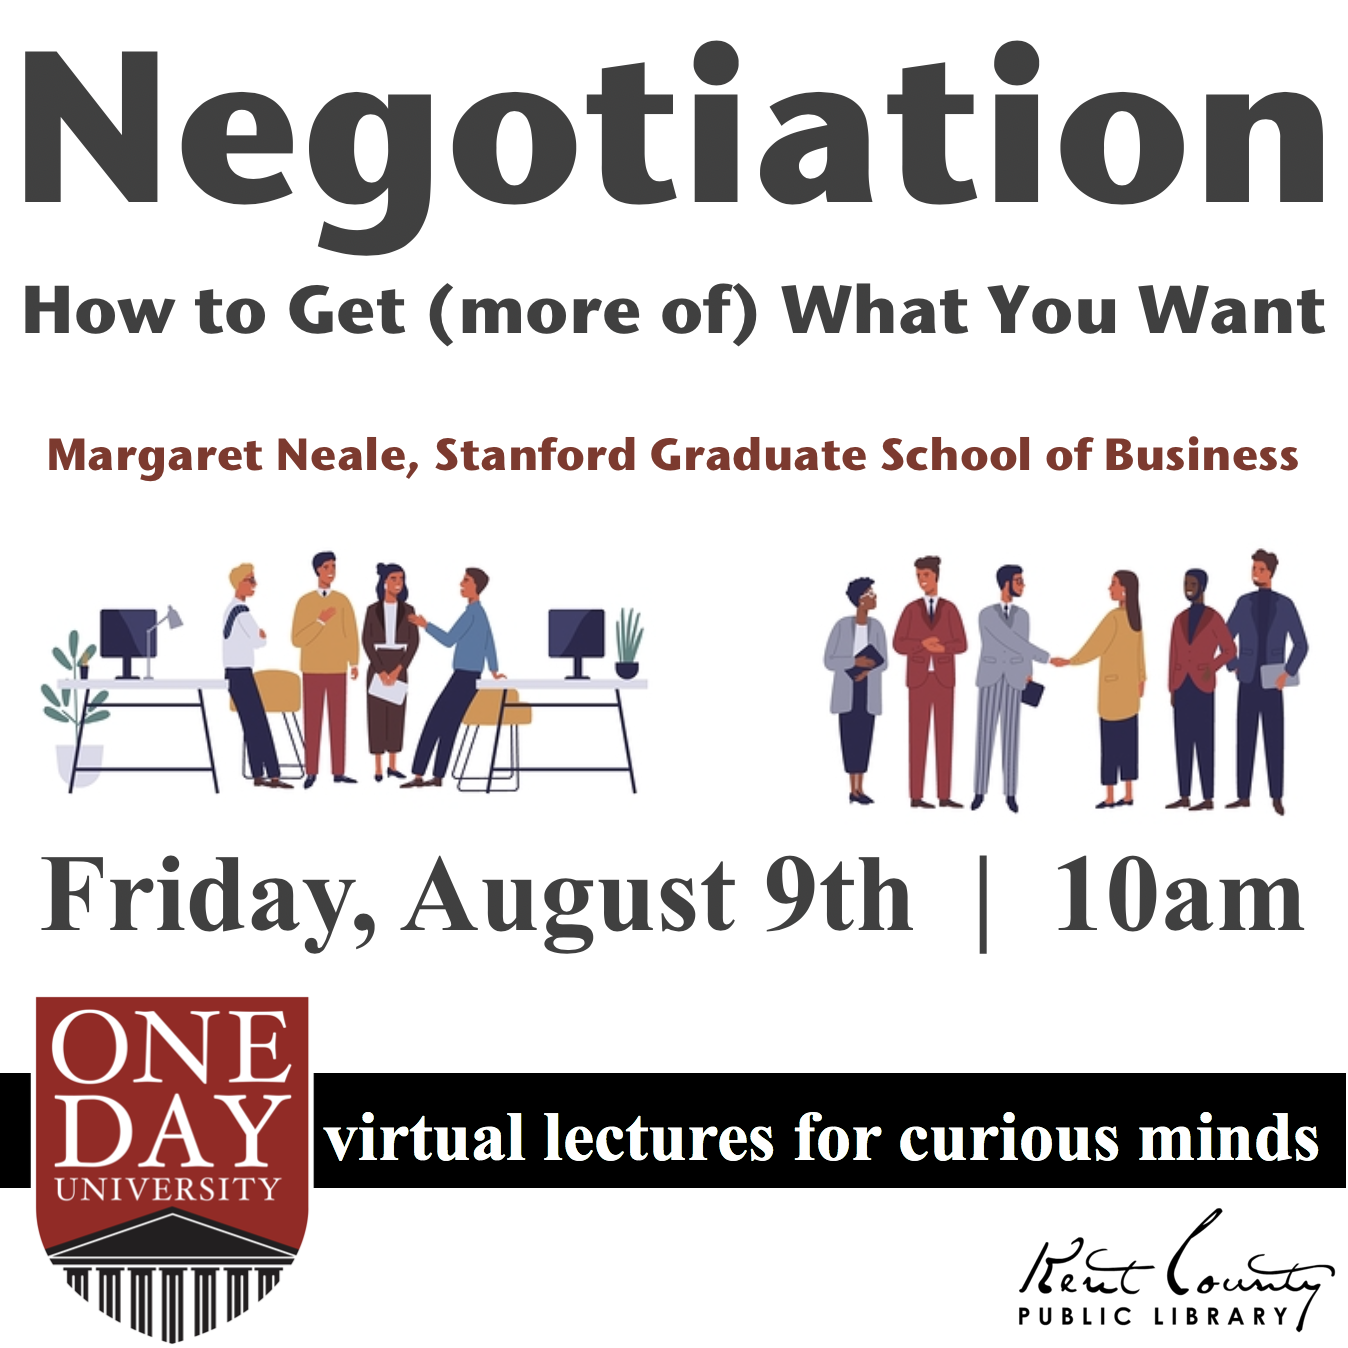 One Day University: Negotiation: How to Get (more of) What You Want